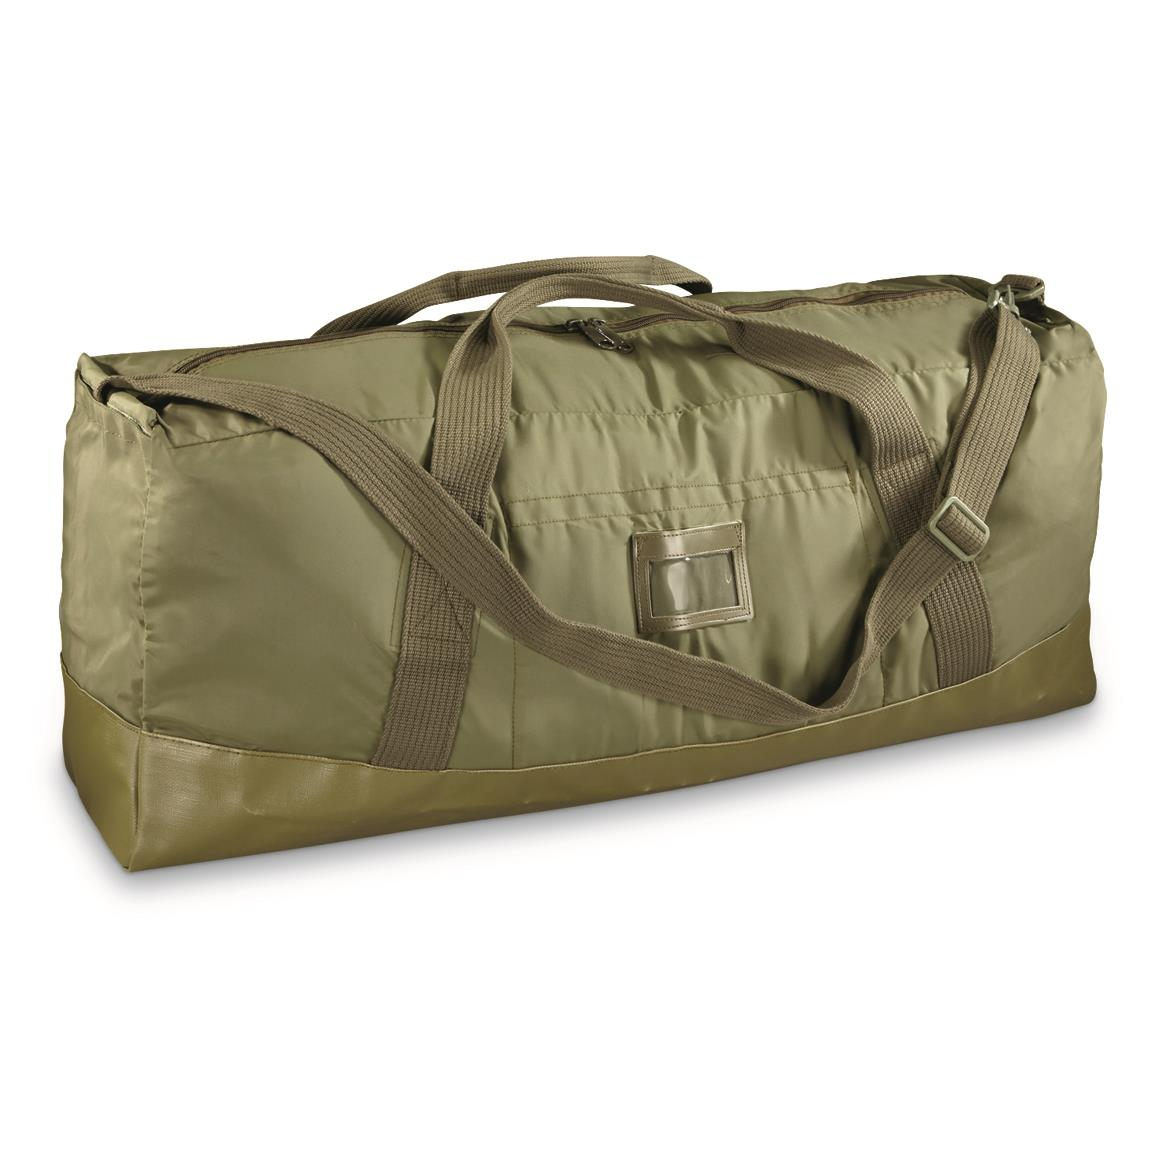 French Military Surplus Nylon Canvas Duffel Bag, New